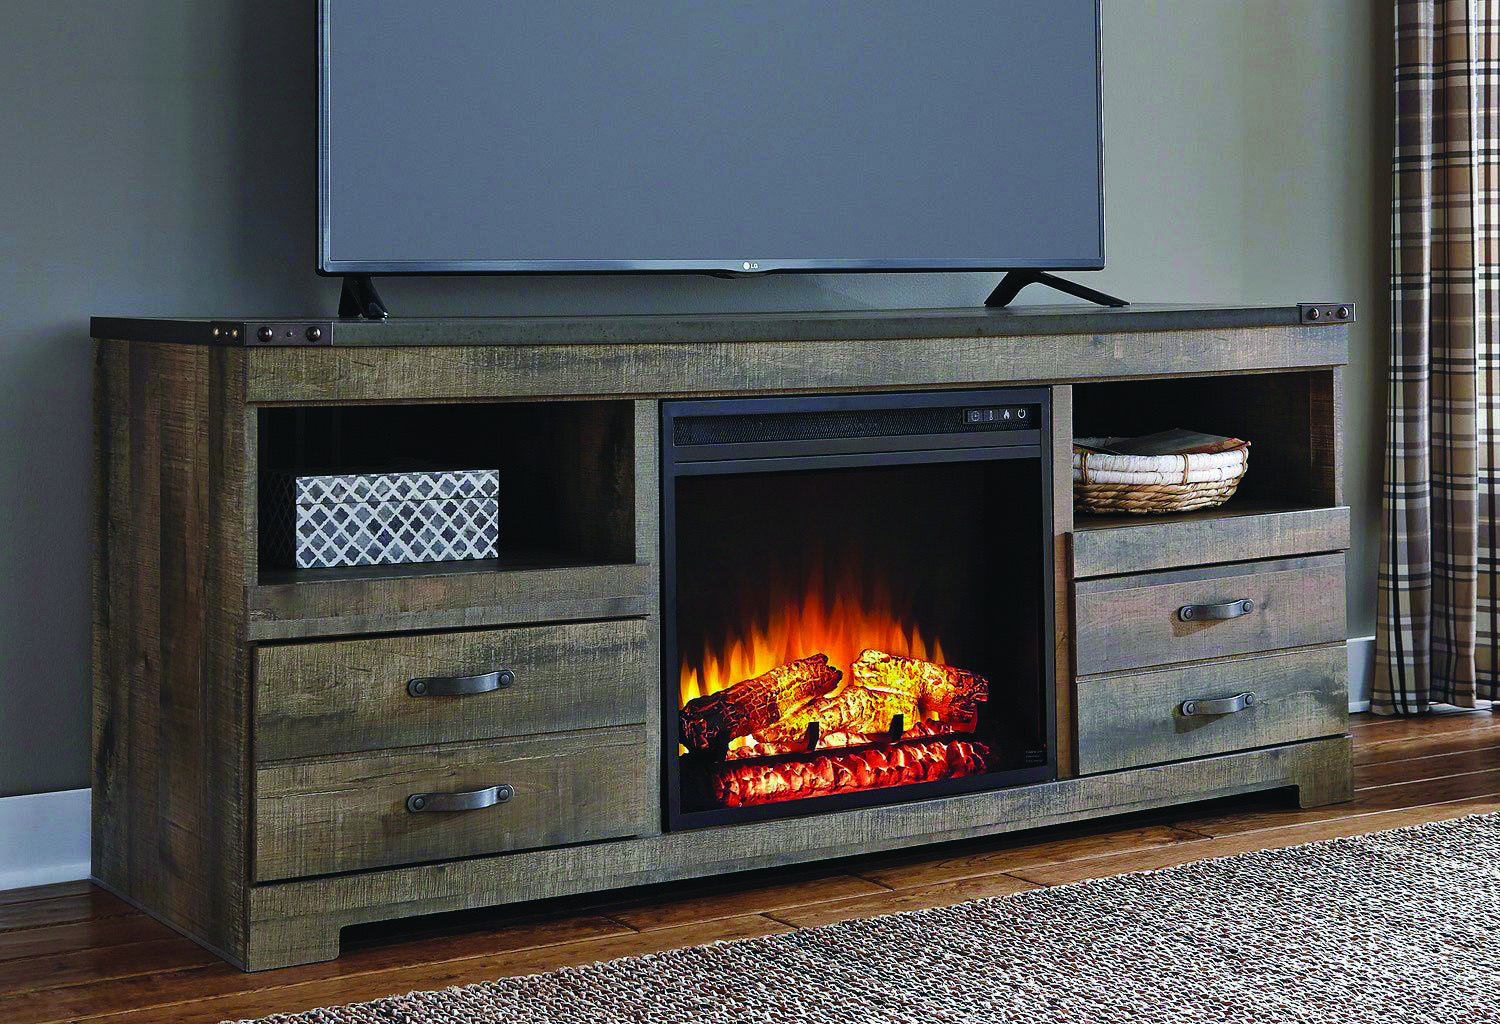 Superb Fireplace Tv Stand Black Friday Deals Exclusive On